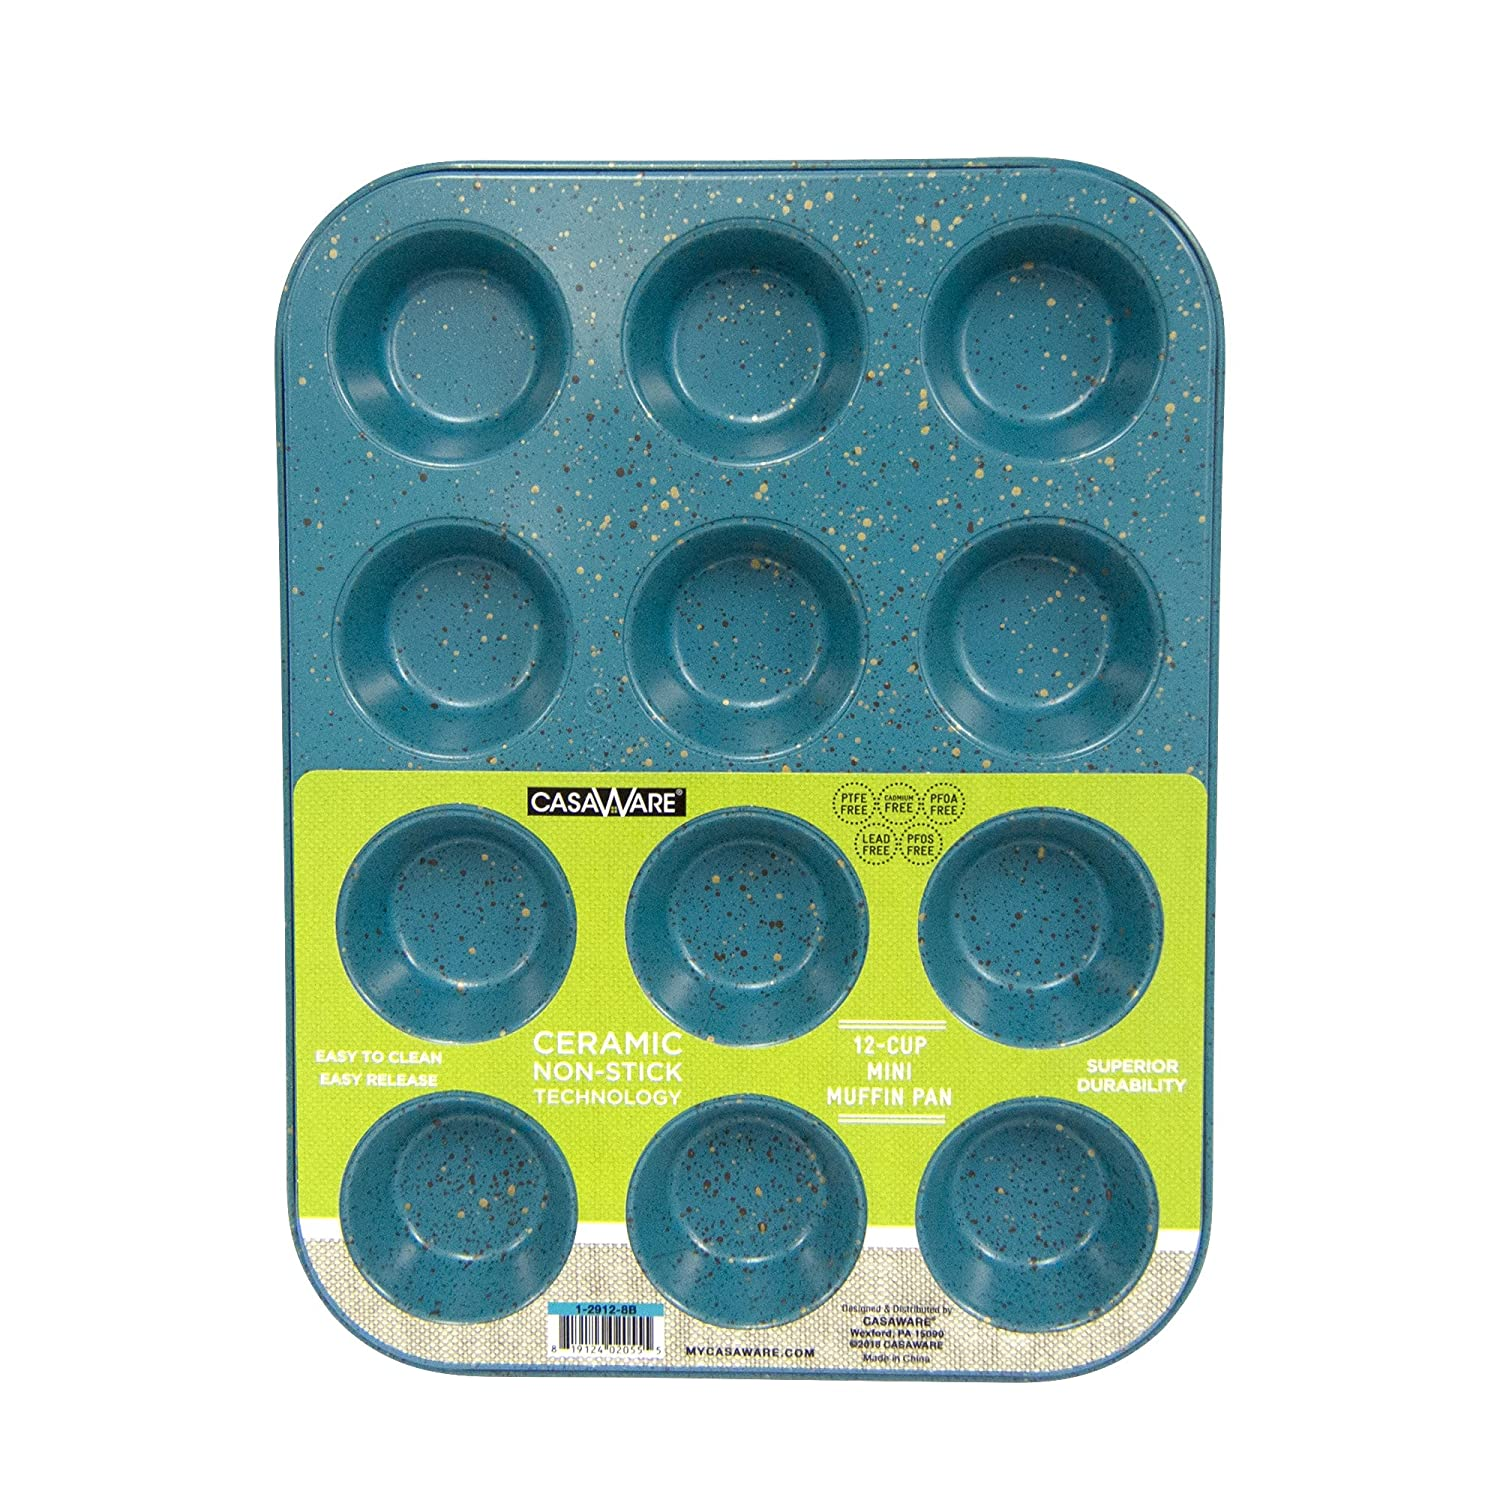 CasaWare Mini Muffin Pan 12 Cup Ceramic Coated Non-Stick (Blue Granite)